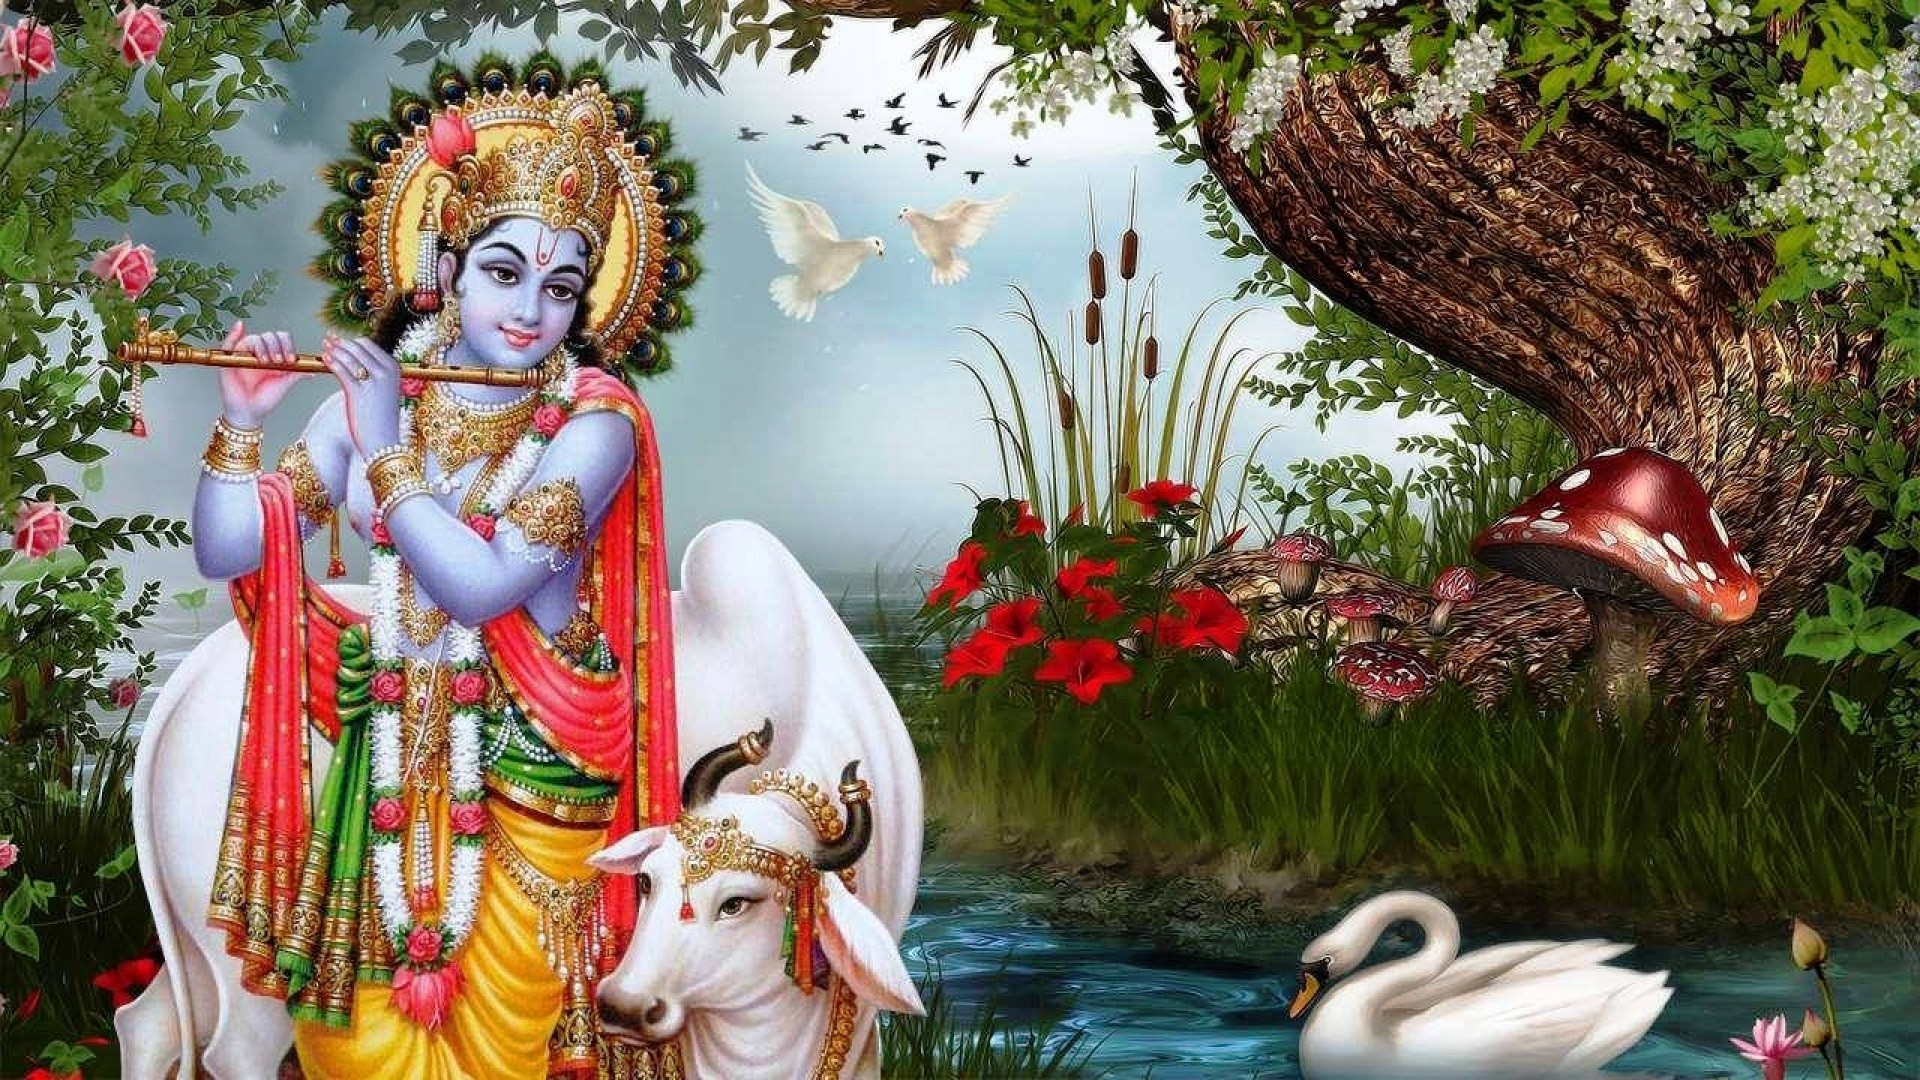 1920x1080, God Wallpapers Collection For Free Download - God Wallpaper Hd Free Download - HD Wallpaper